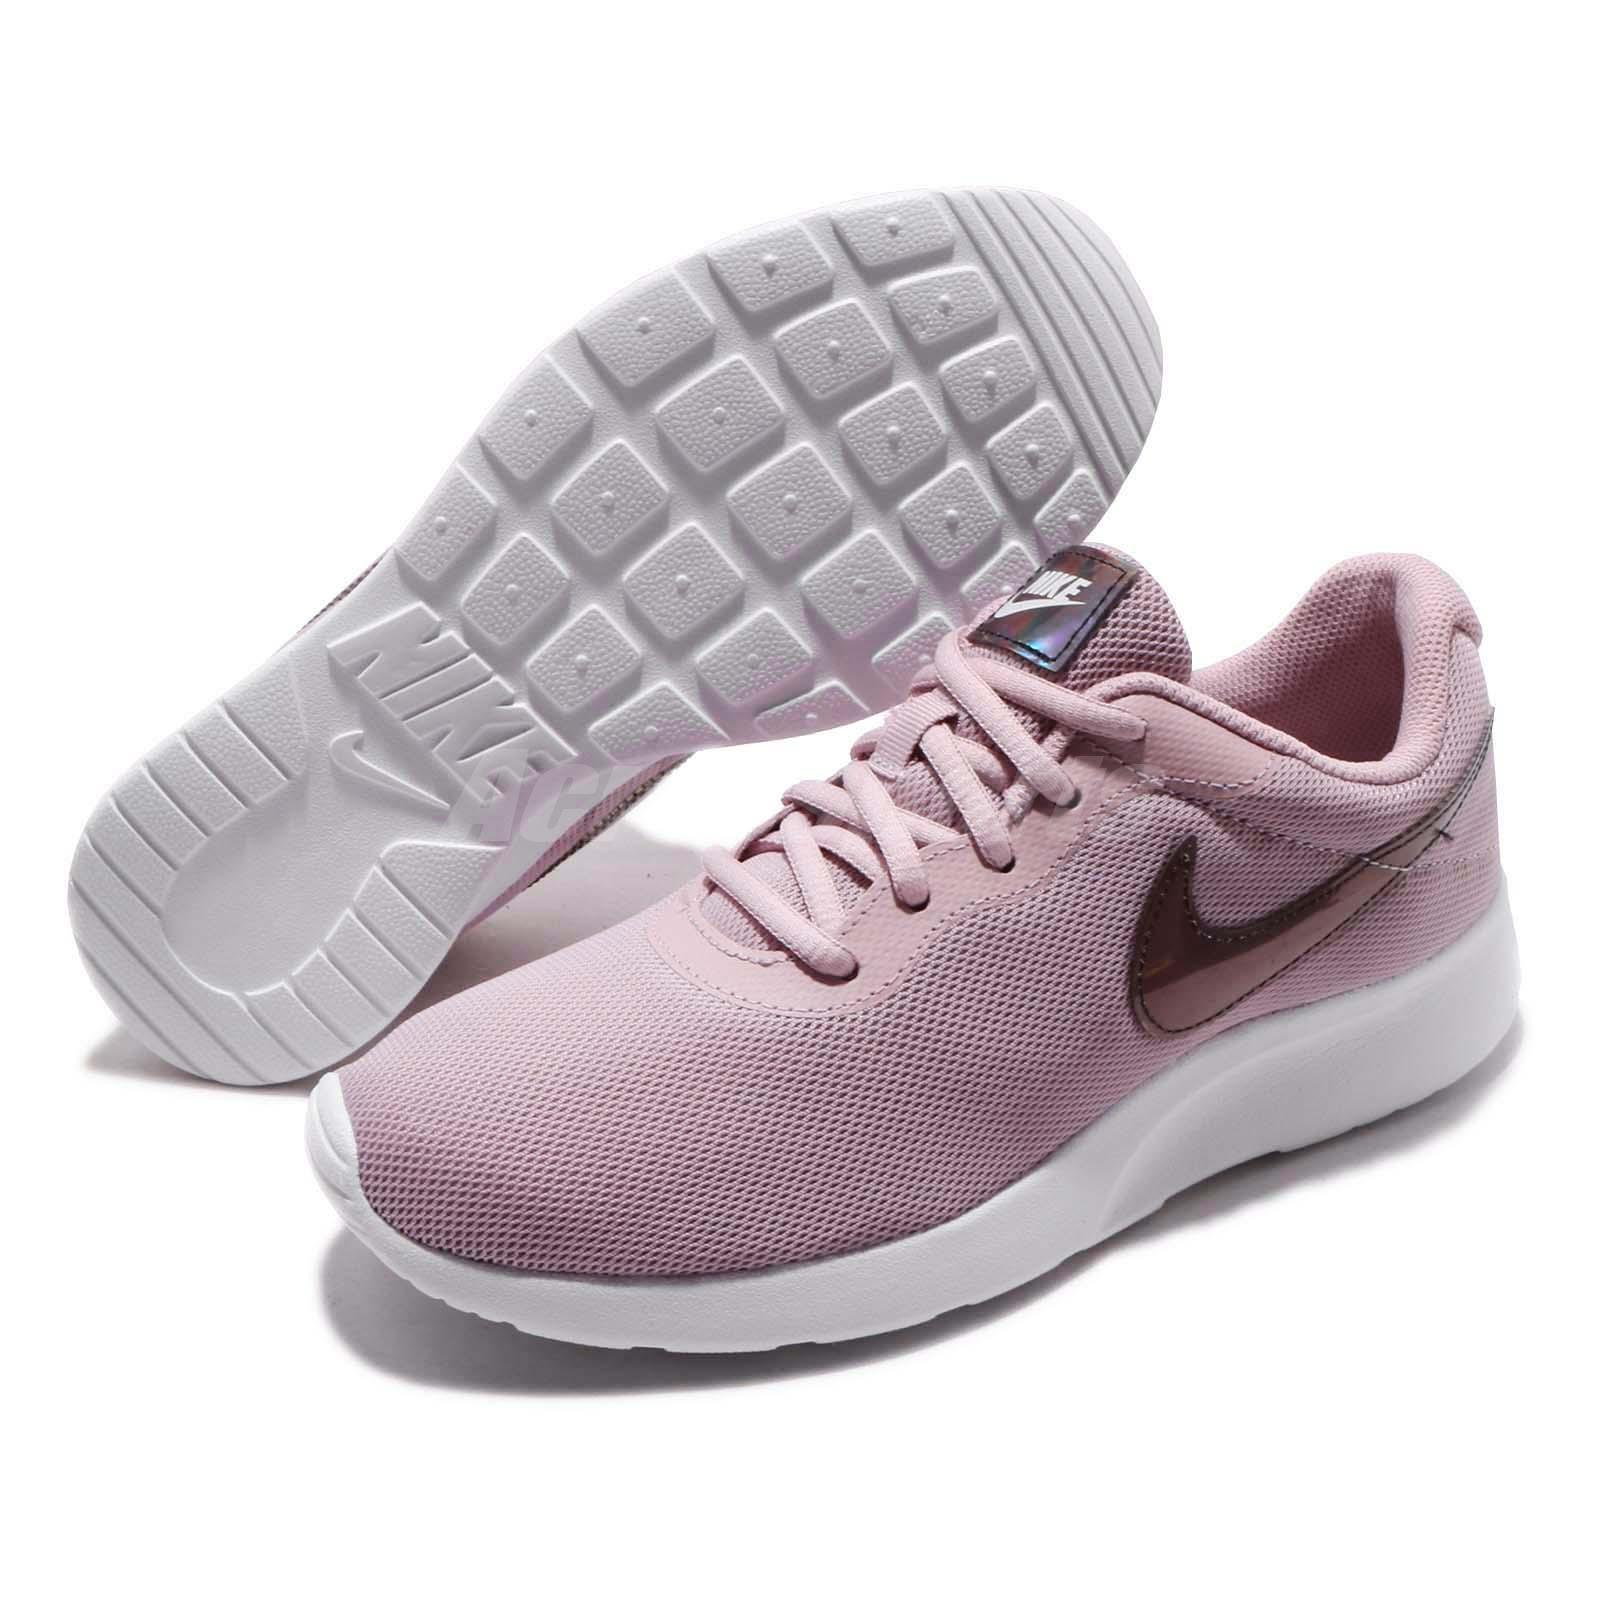 d8adae98da6 Nike Wmns Tanjun Plum Chalk White Women Running Casual Shoes Sneakers  812655-503 Shoes